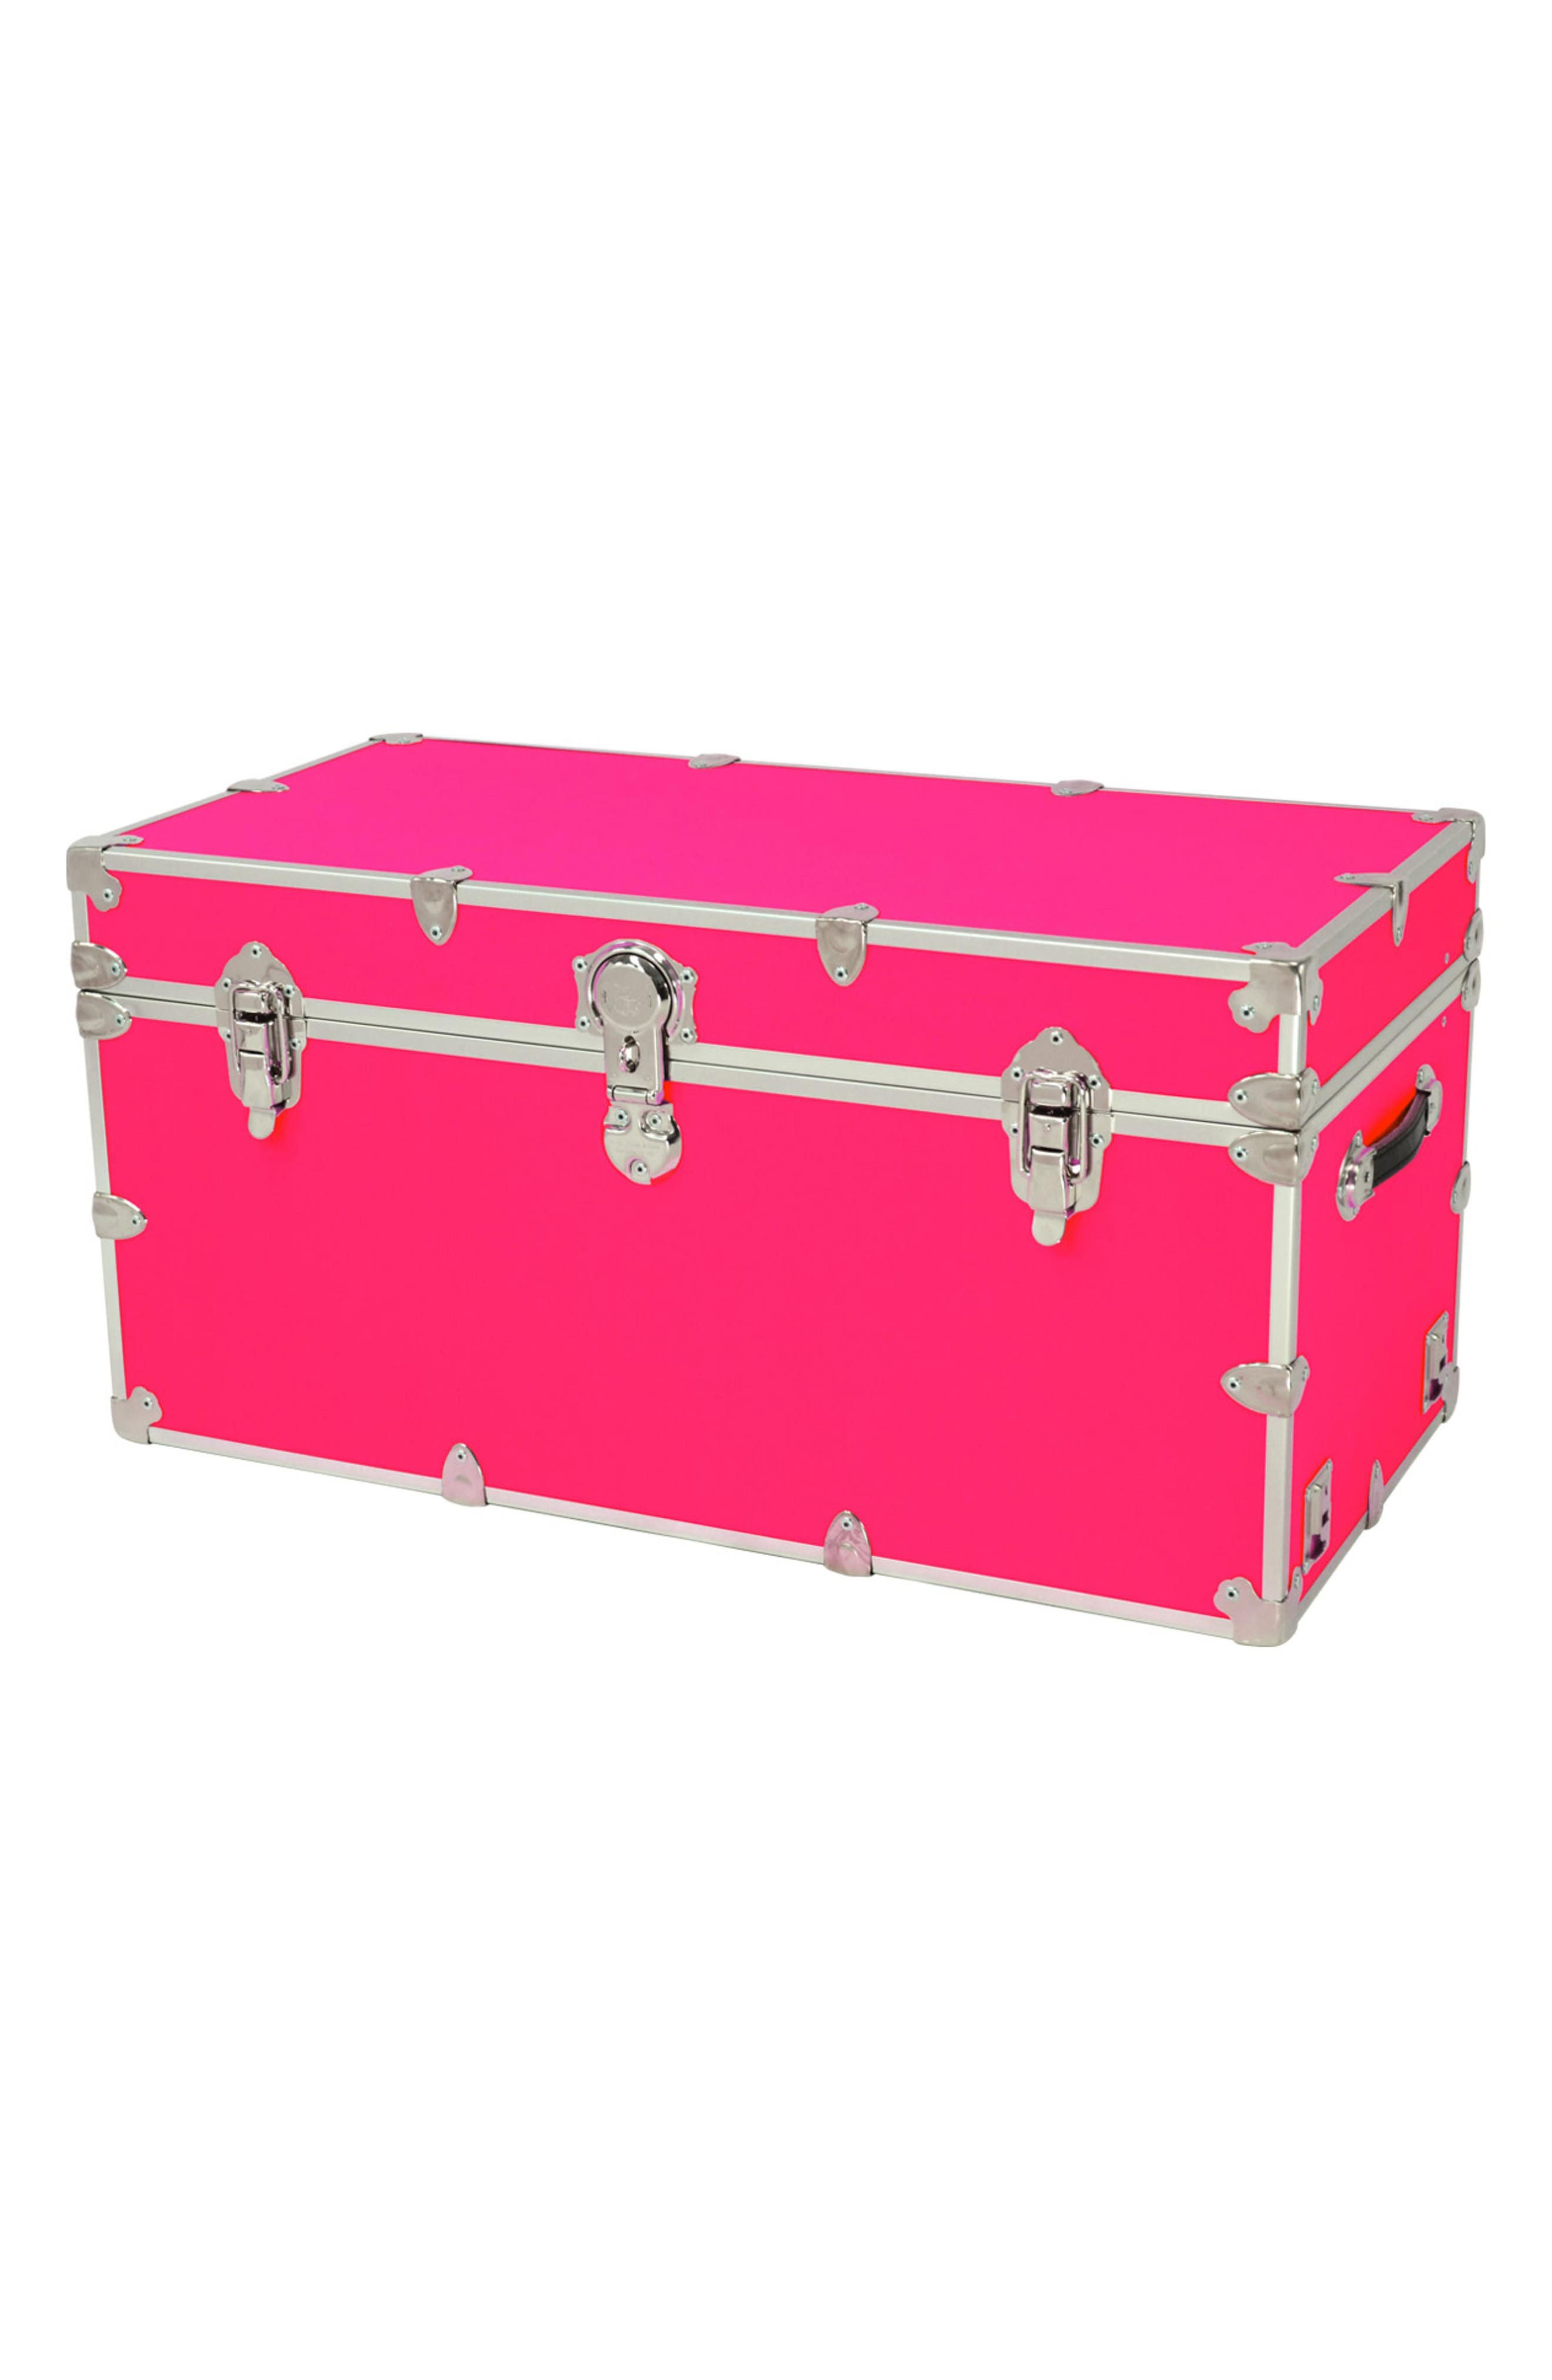 Rhino Trunk  Case Xxl Armor Trunk Size One Size  Pink